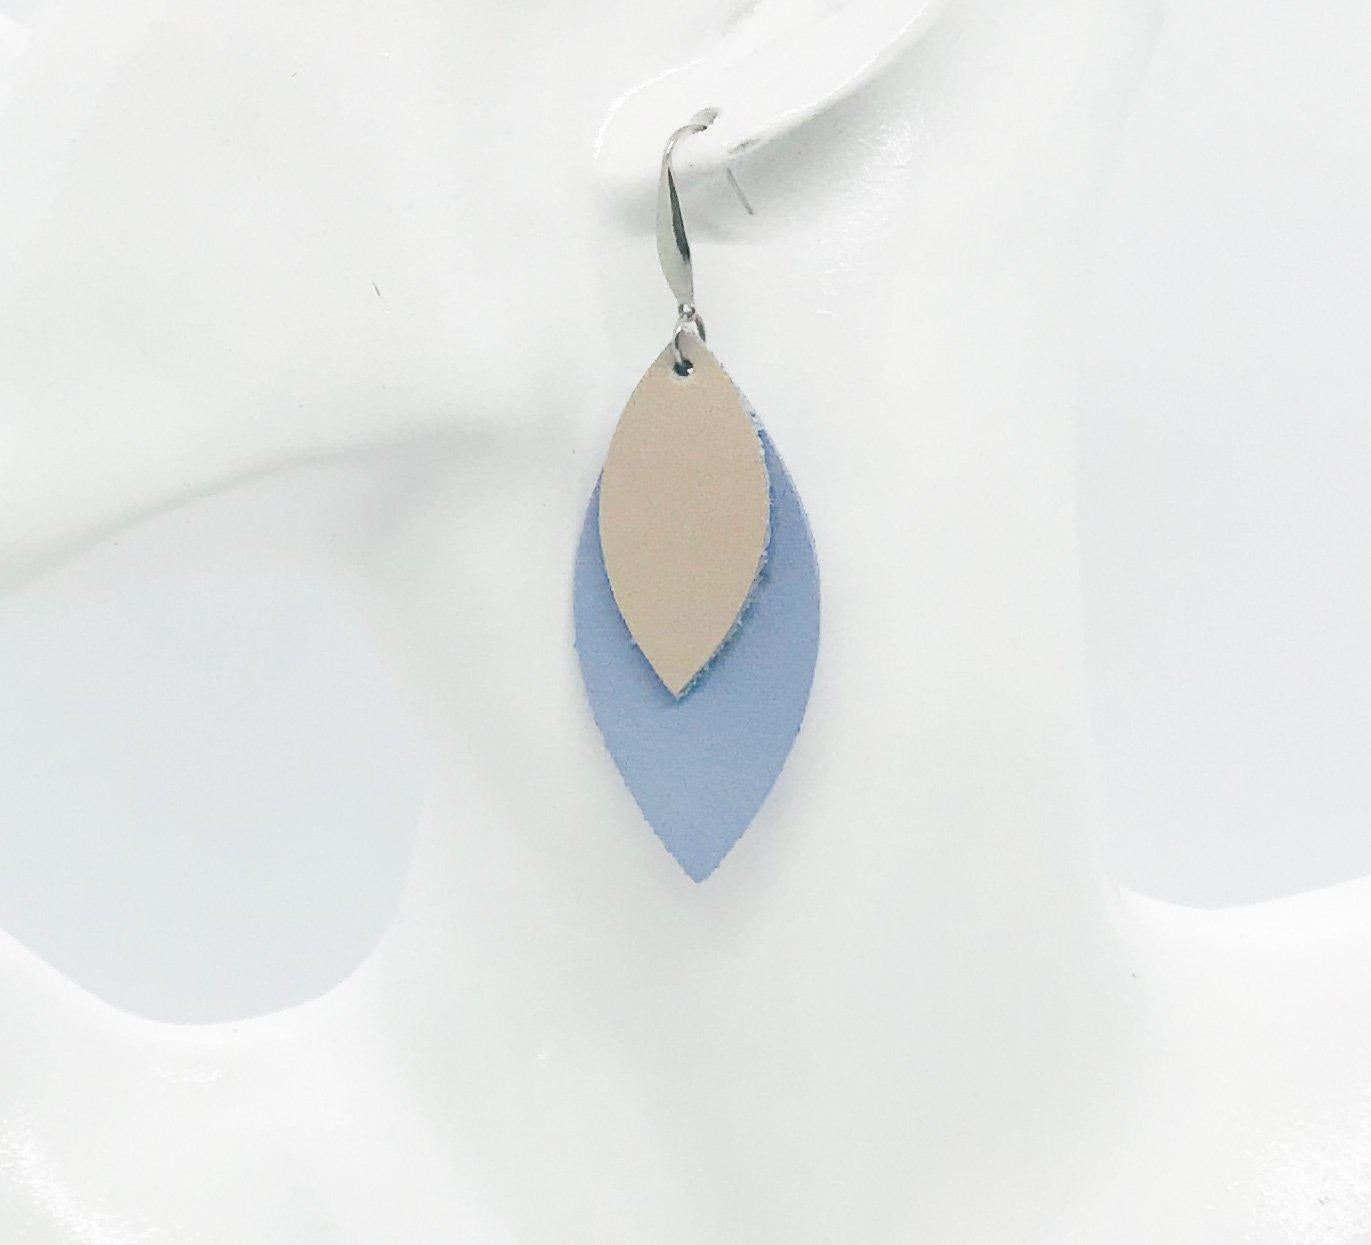 Baby Blue Genuine Leather Earrings - E19-214